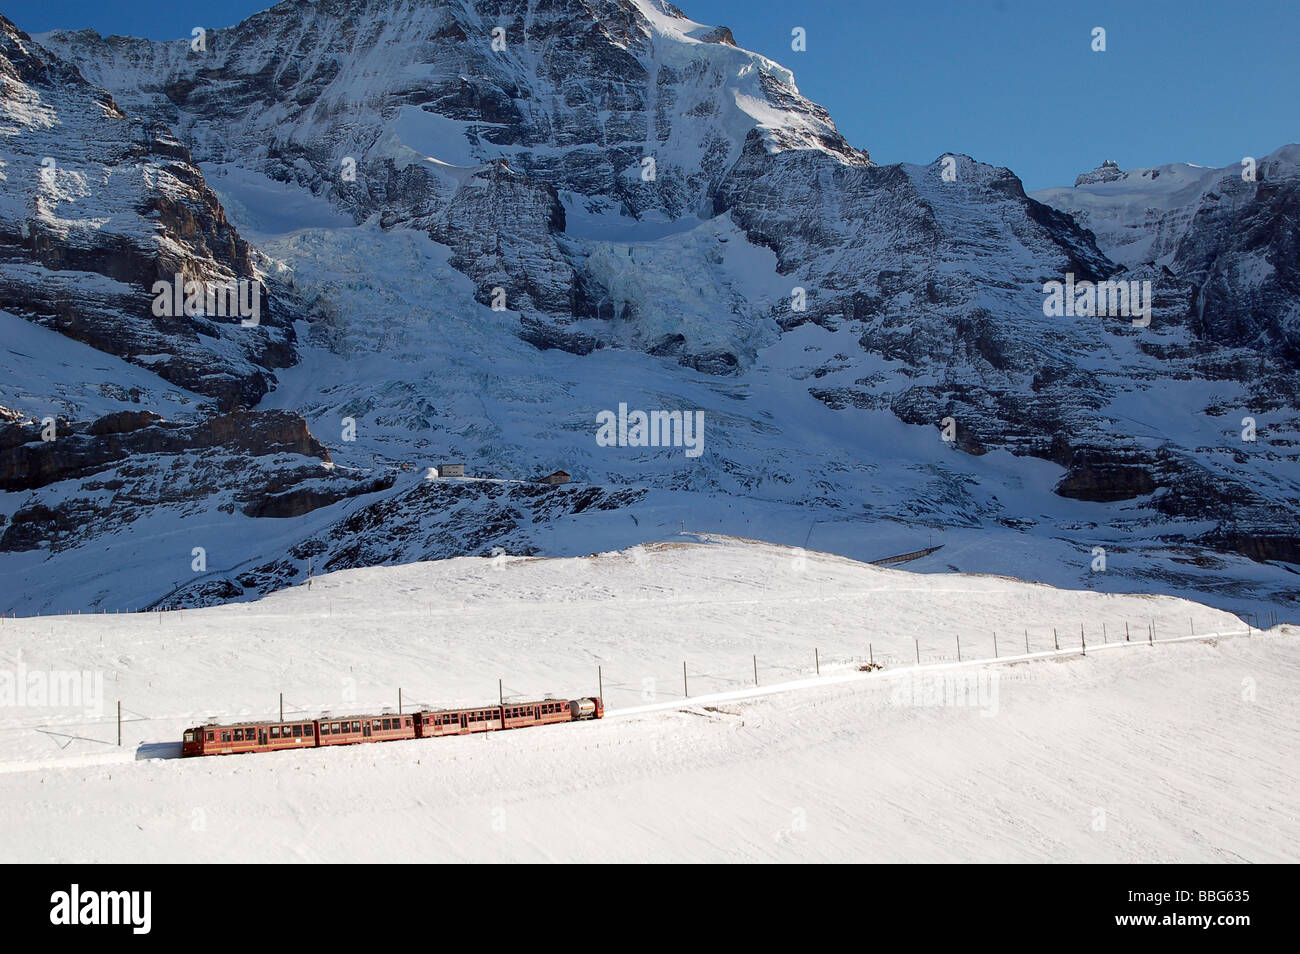 Chemin de fer train dans la montagne dans les Alpes Suisses près de Grindelwald en Suisse Europe Photo Stock